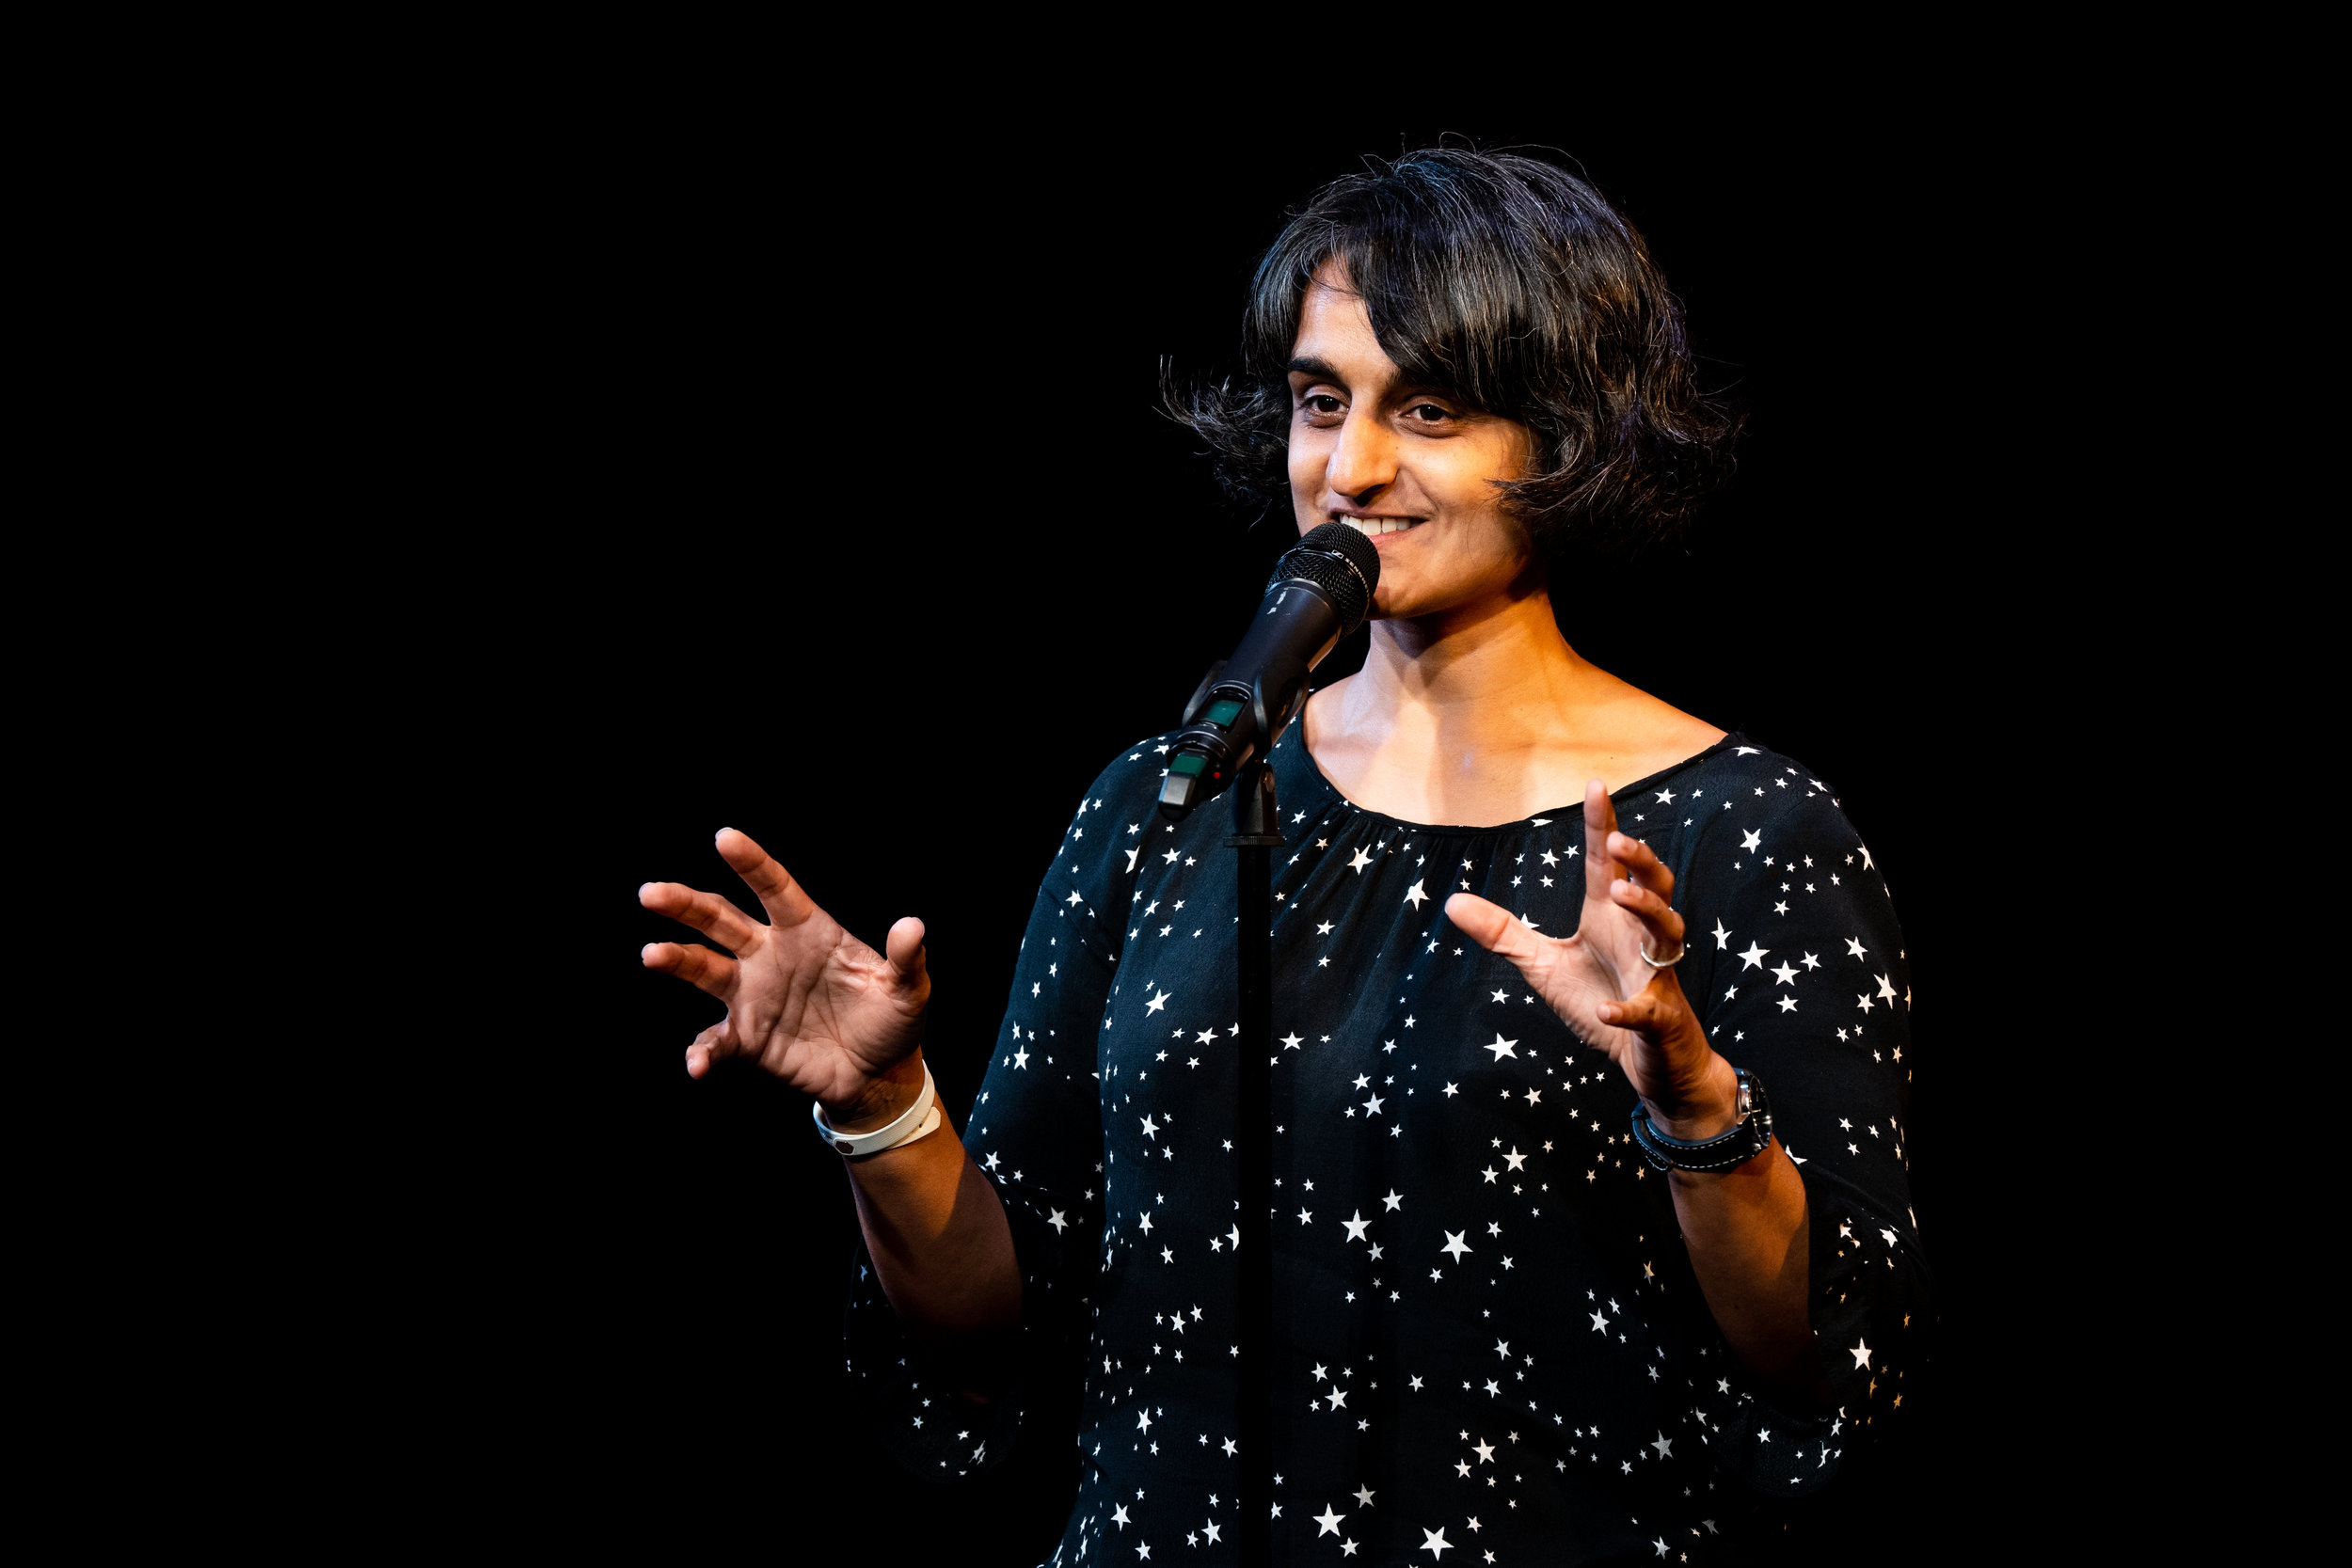 Parmvir Bahia shares her story on The Story Collider stage at Caveat in NYC in October, 2018. The show was presented in partnership with the RockEDU and ASBMB's SciOut 2018 un-conference. Photo by Zhen Qin.